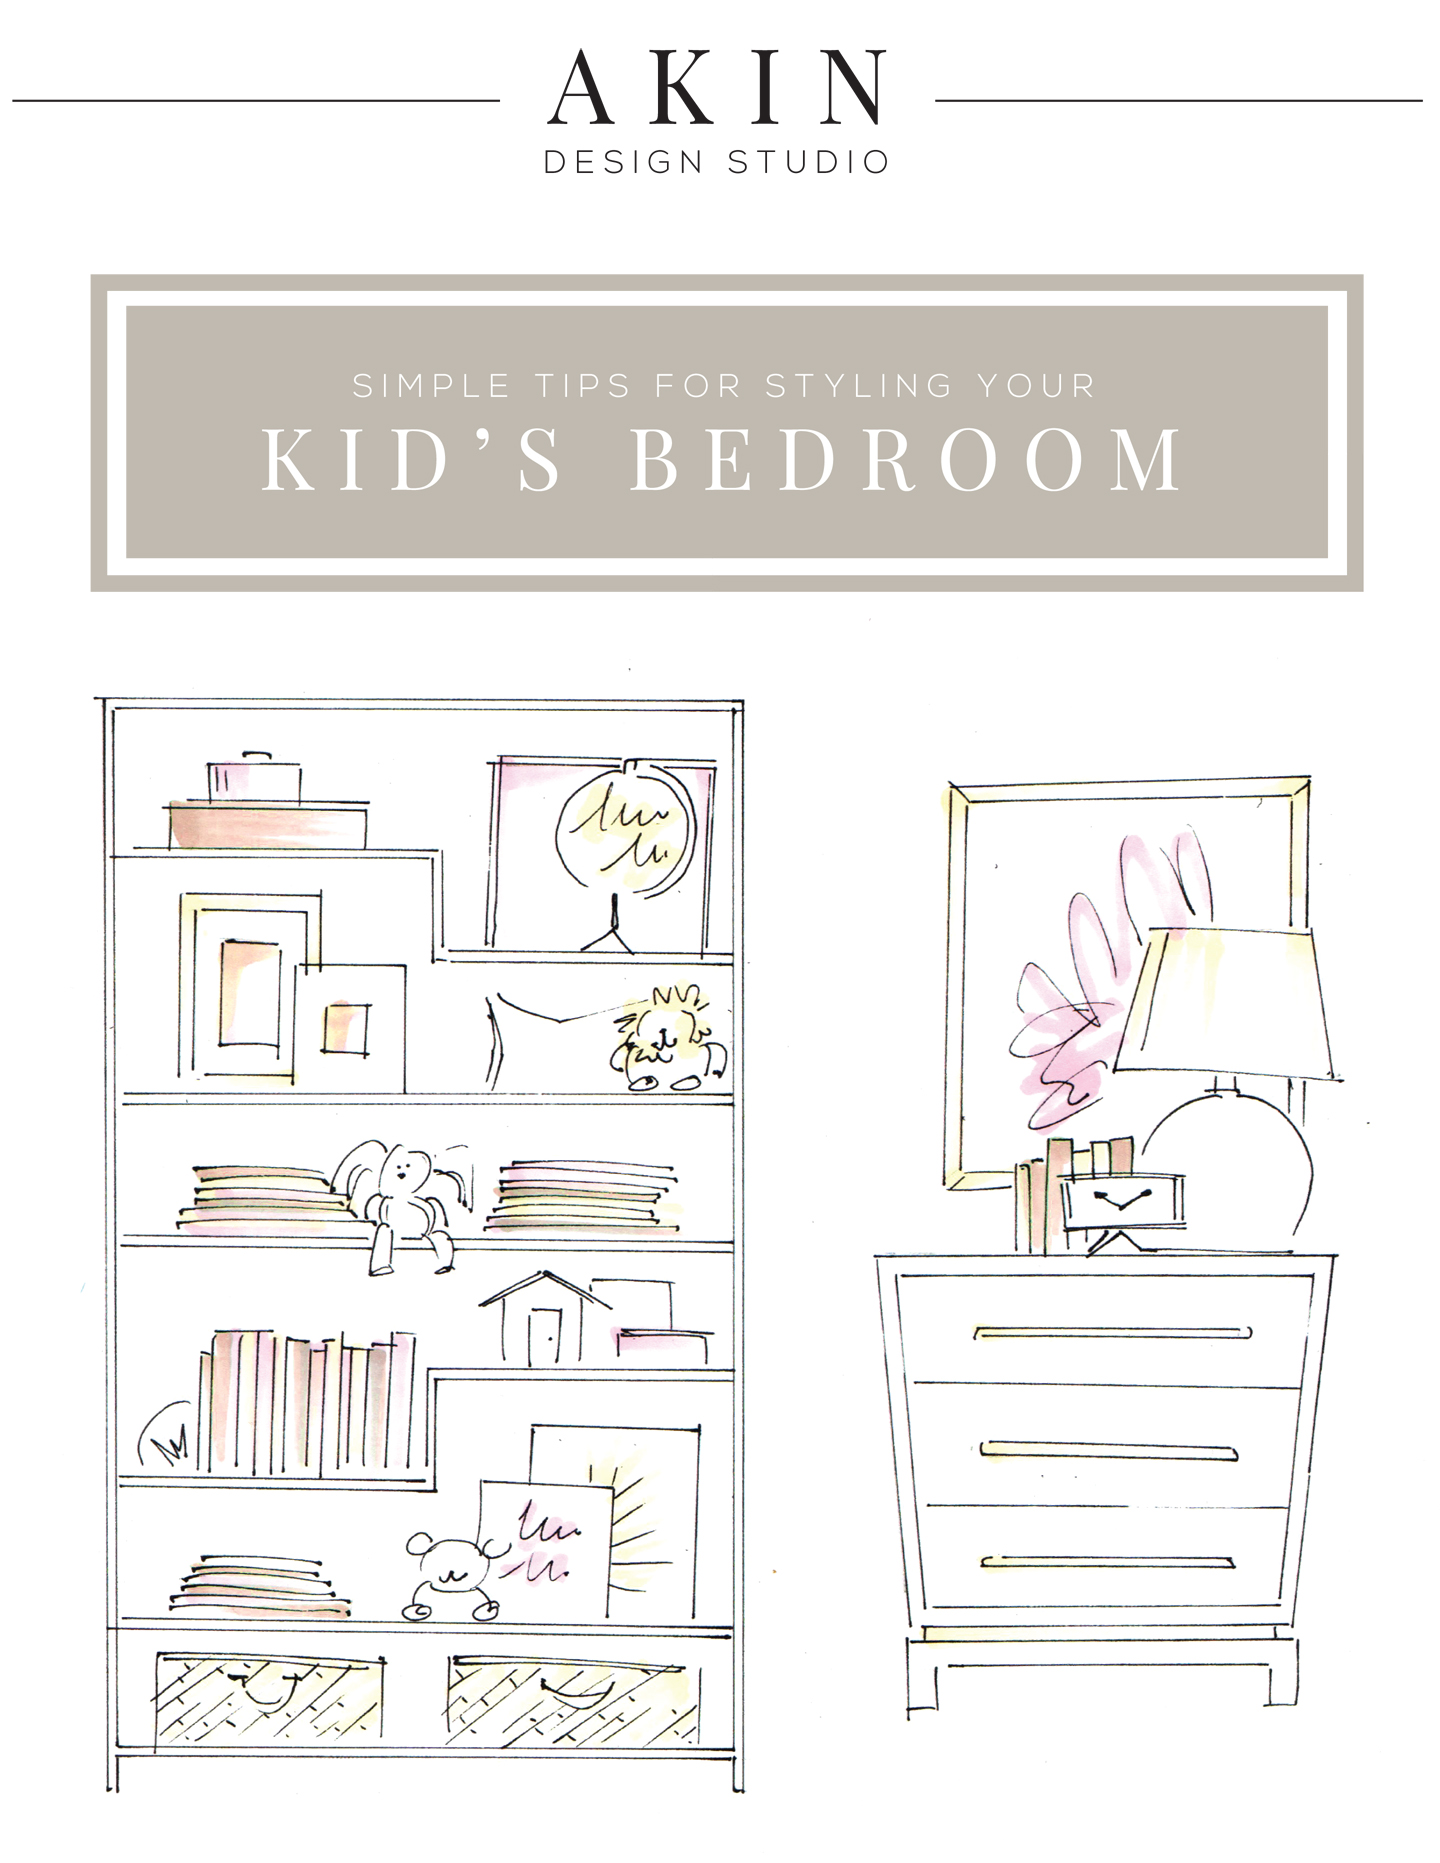 How to Style a Kid's Bedroom | Akin Design Studio